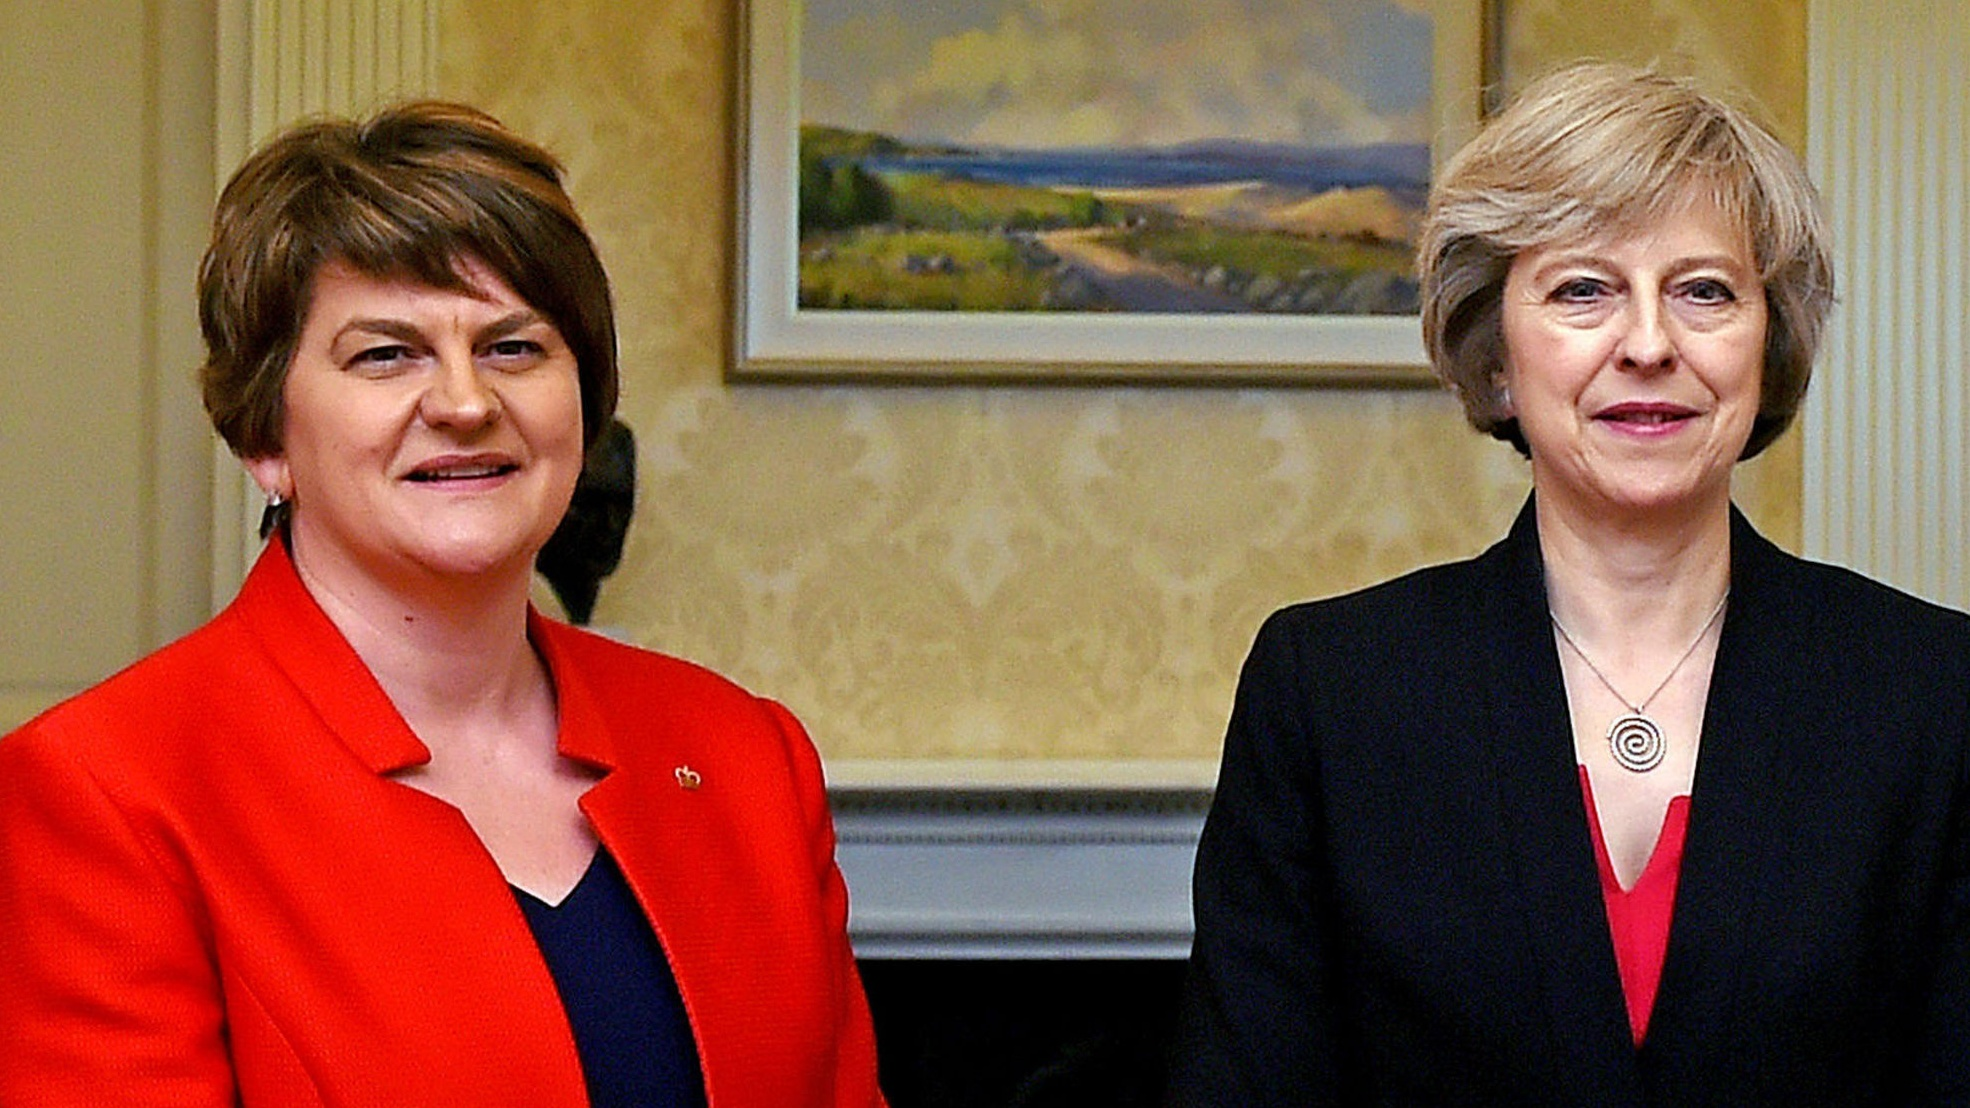 DUP head: Talks with UK Conservatives going well